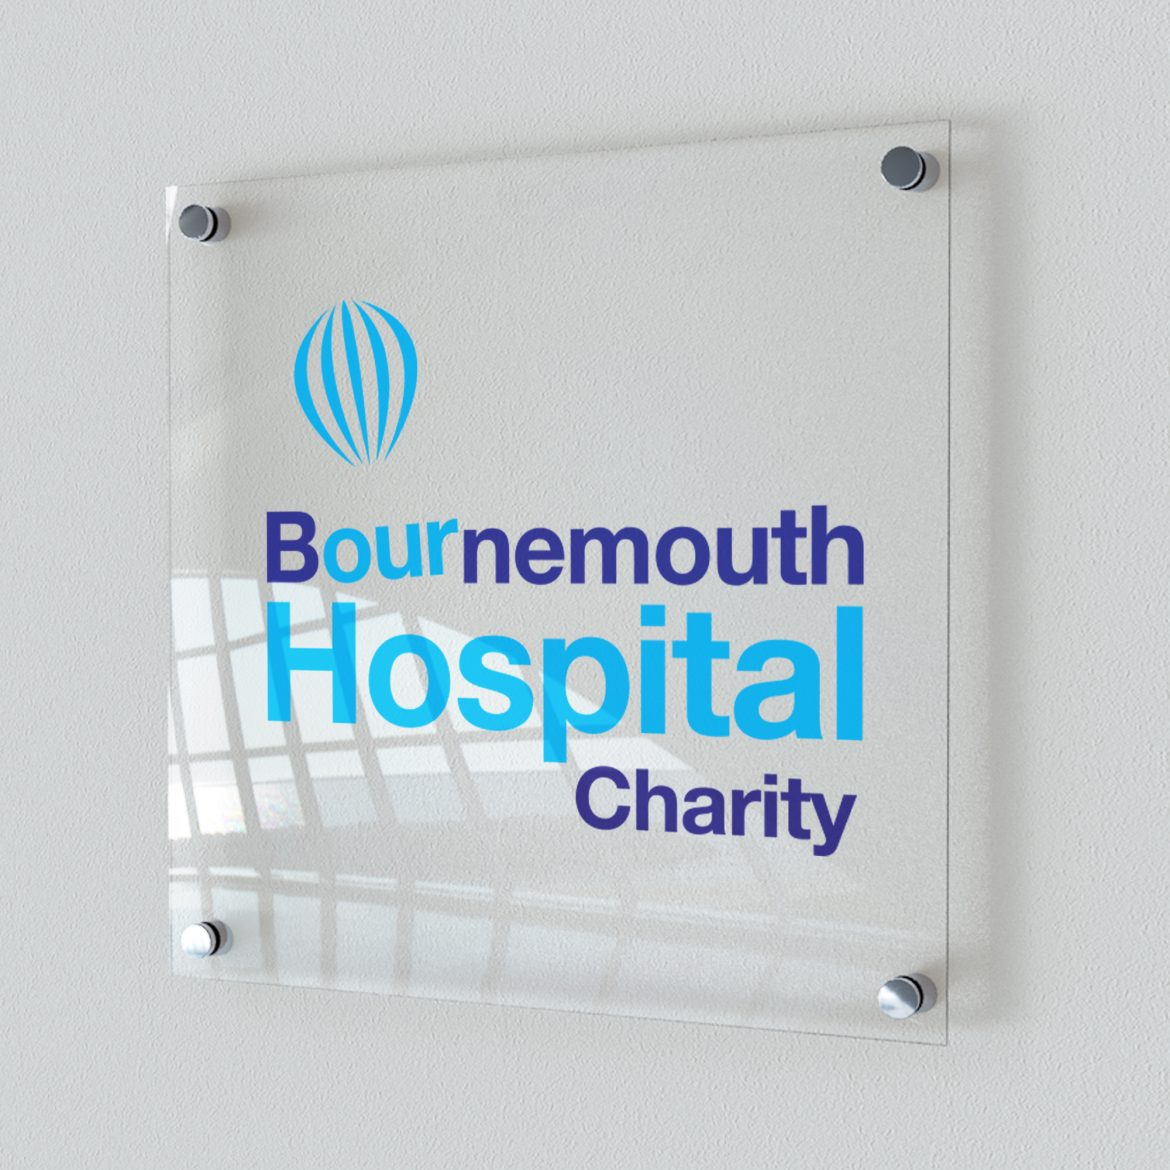 NHS Foundation Trust signage